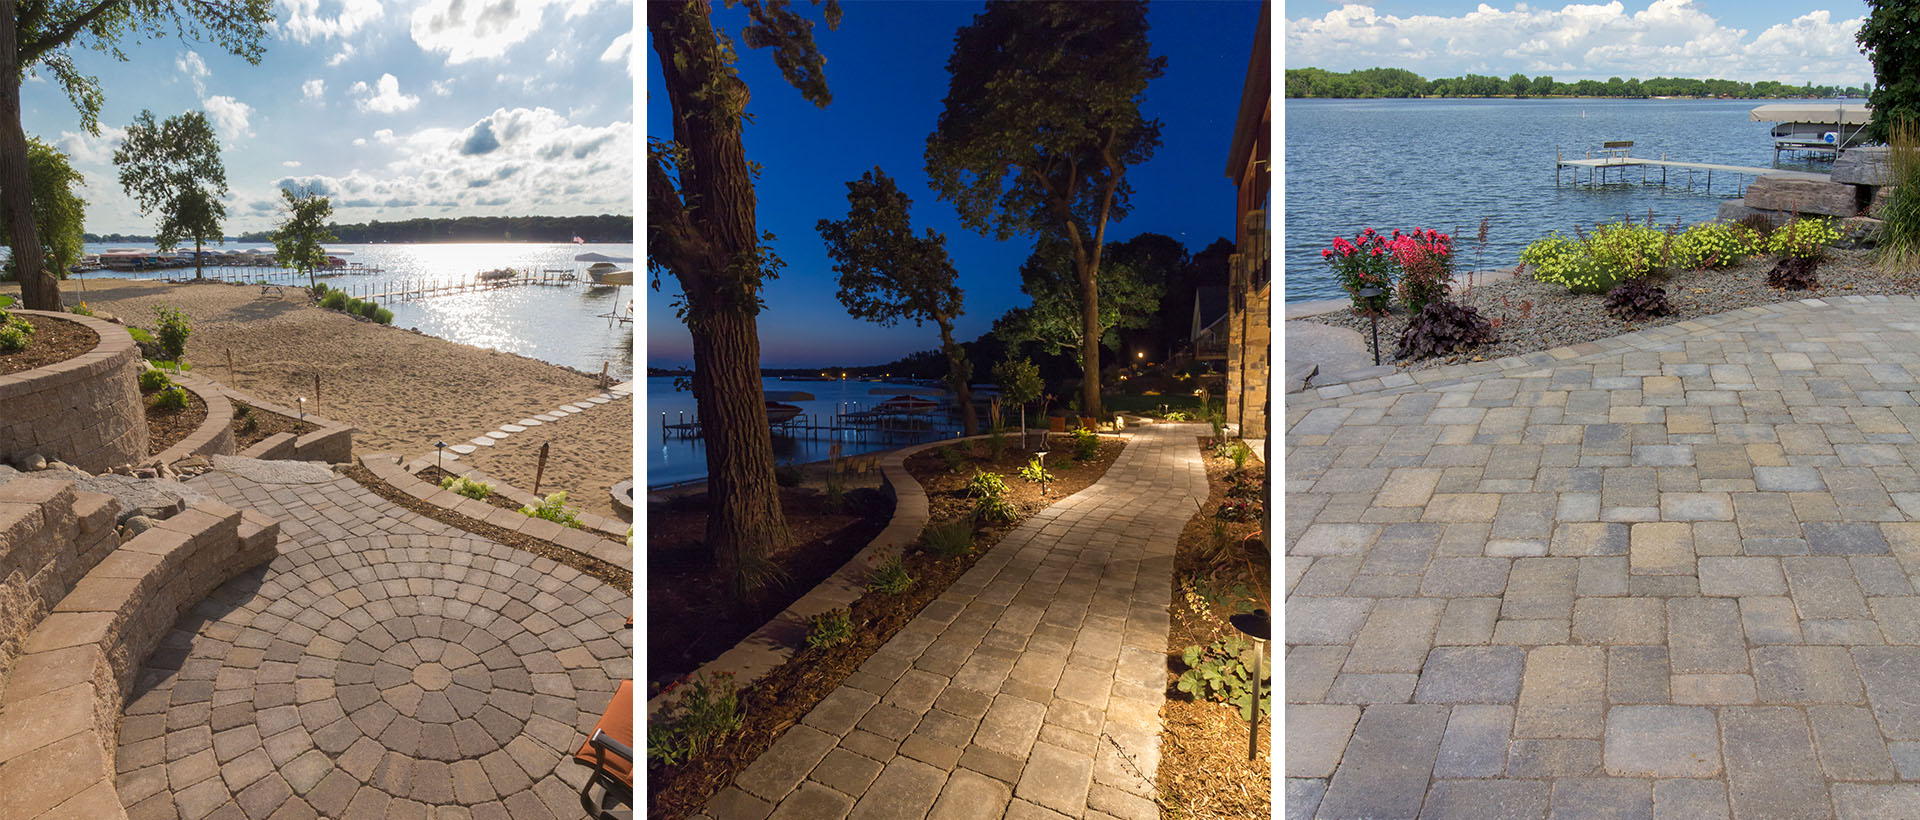 When your architecture calls for the look of a centuries-worn paver patio, pathway or drive, Lamont is a popular choice of property owners and designers because of its aged appearance and endless design opportunities.